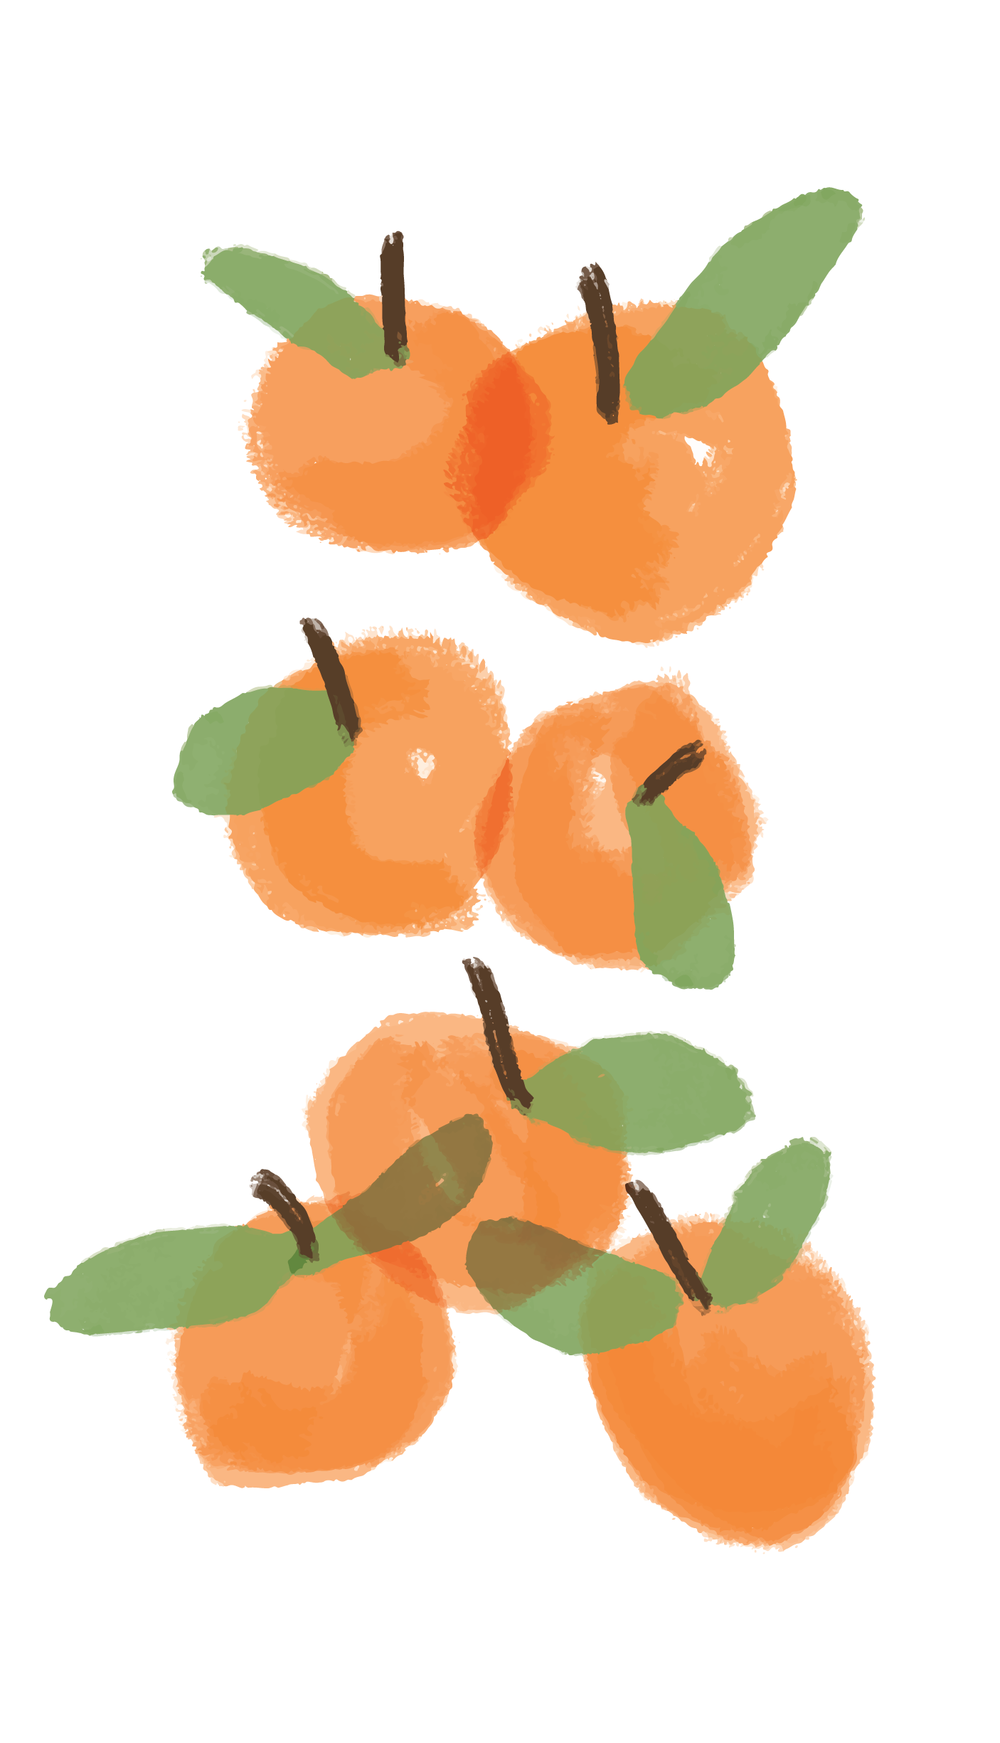 fruit-01.png